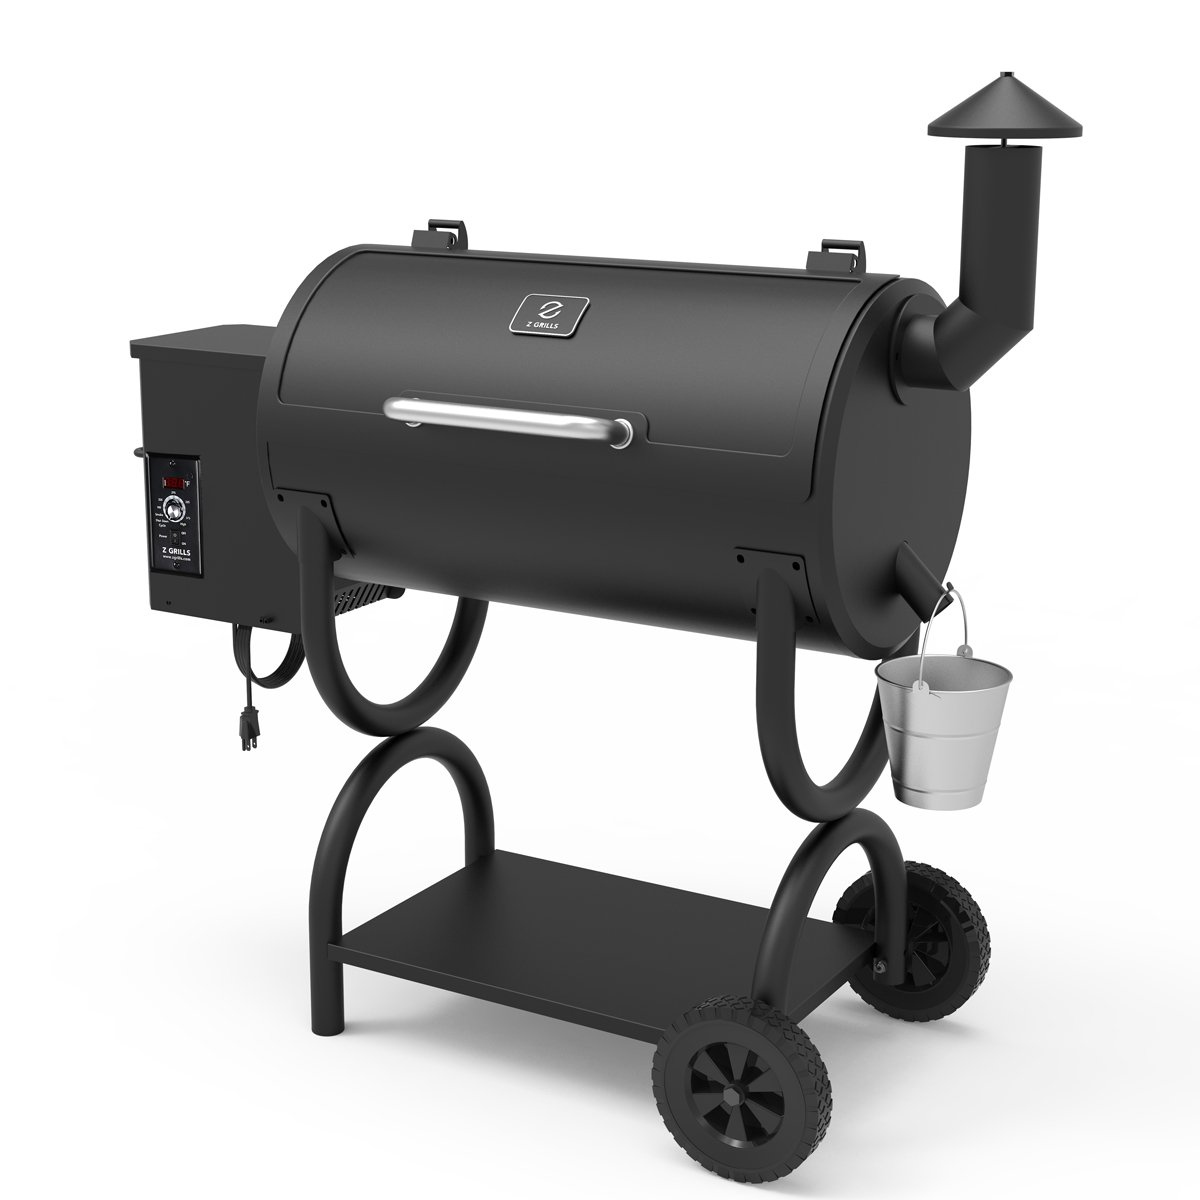 Z GRILLS Wood Pellet Grill 7-in-1 BBQ Smoker for Outdoor Cooking 550SQIN Barbecue Area 10LB Hopper (ZPG-550B)